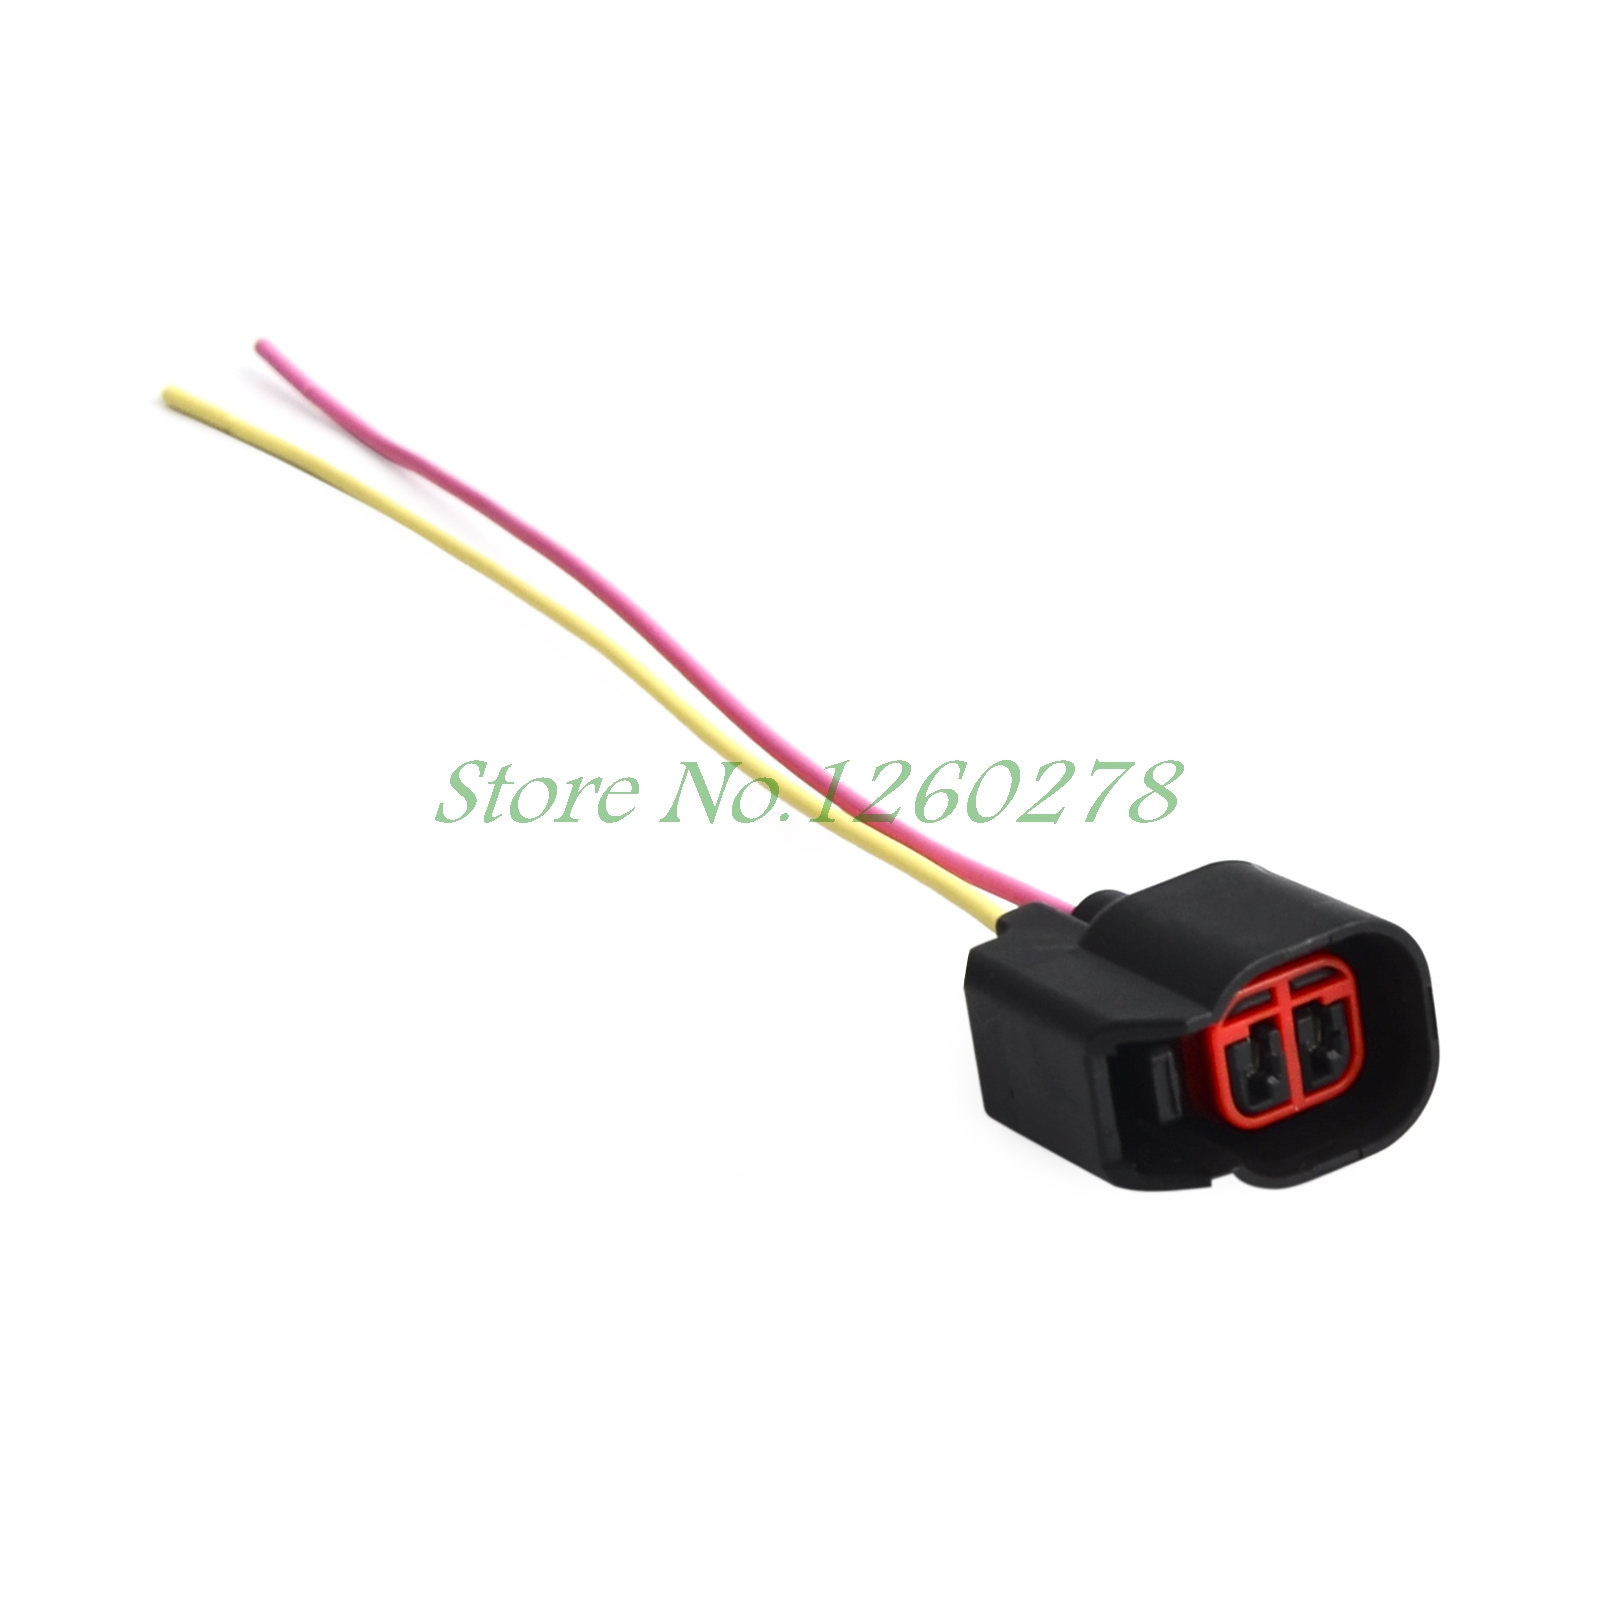 Engine Fuel Injector Wire Harness Connectors Adapter For Ev6 Ev14 Us Bmw Heated Grip Car Pigtail Cut Splice In Inject Controls Parts From Automobiles